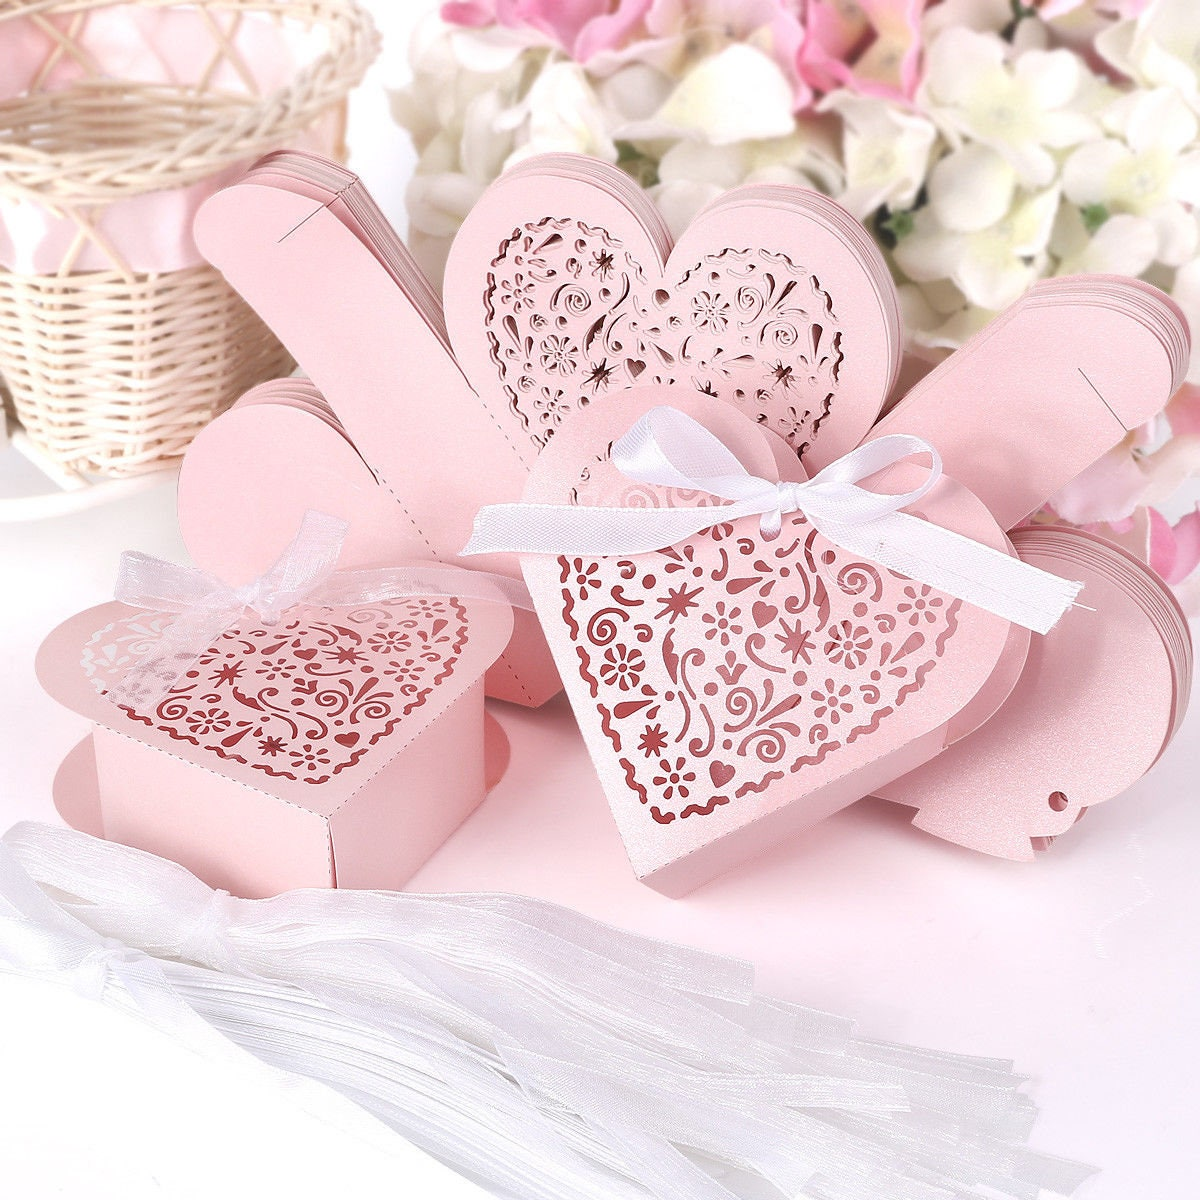 Wedding Favors Hollow Cut Heart Shape Cup Cake Gift Product